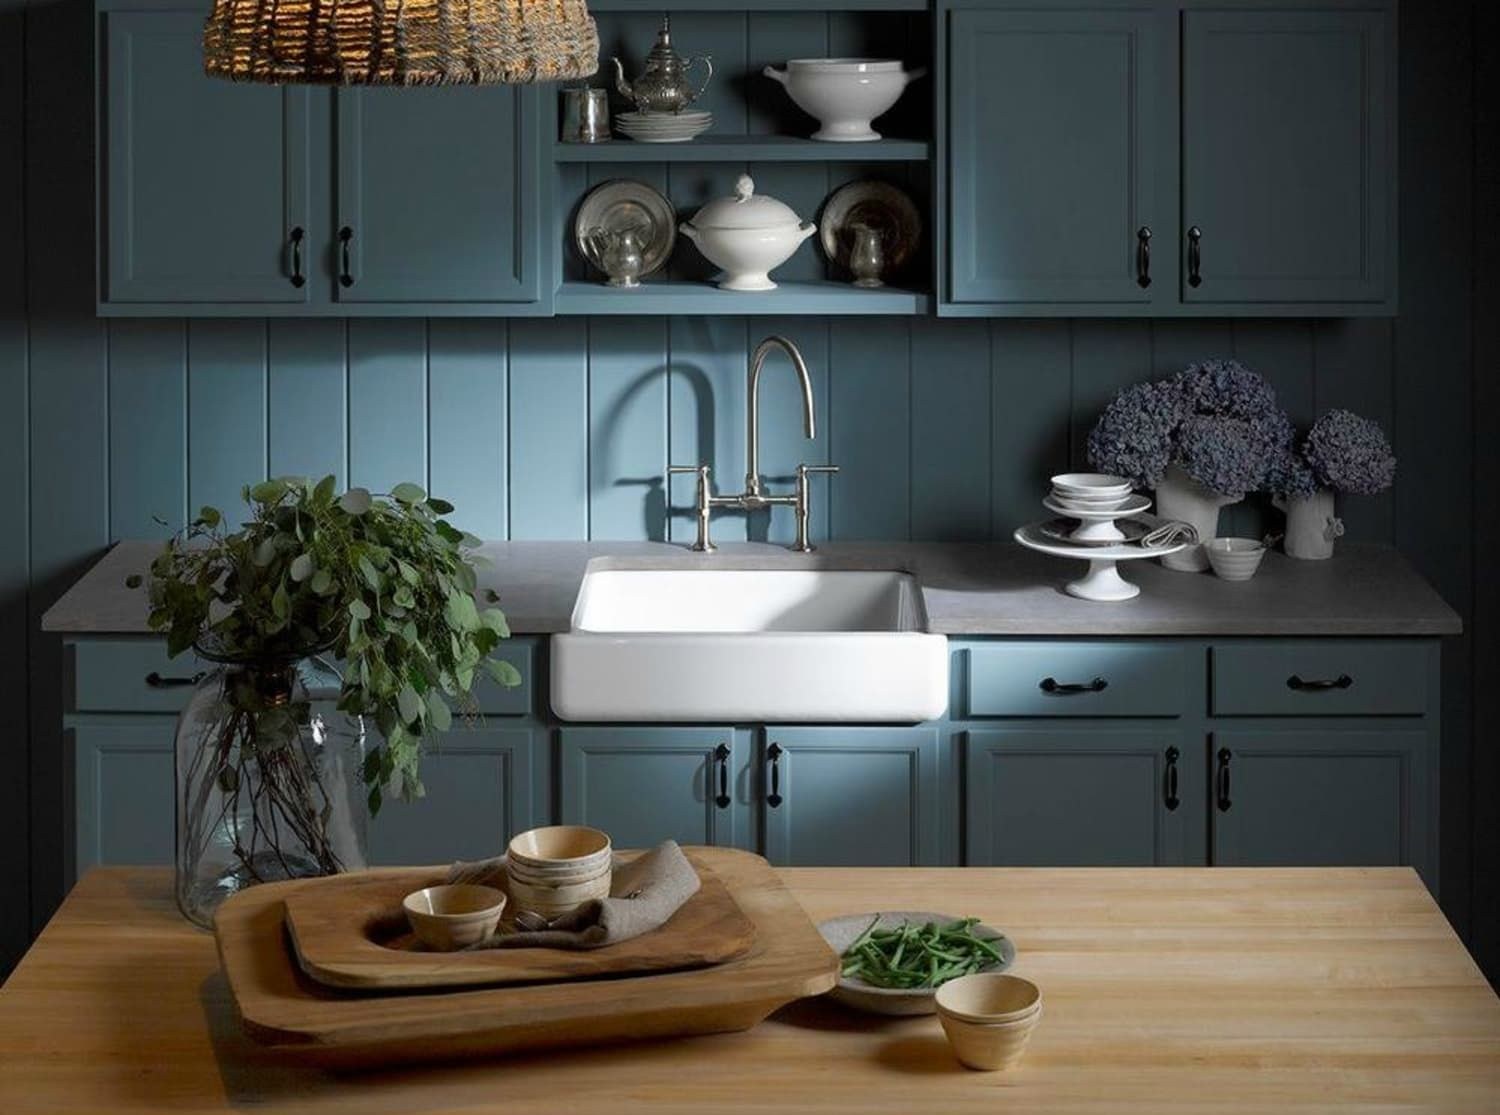 Apron Front Farmhouse Sinks Best, BudgetFriendly Picks